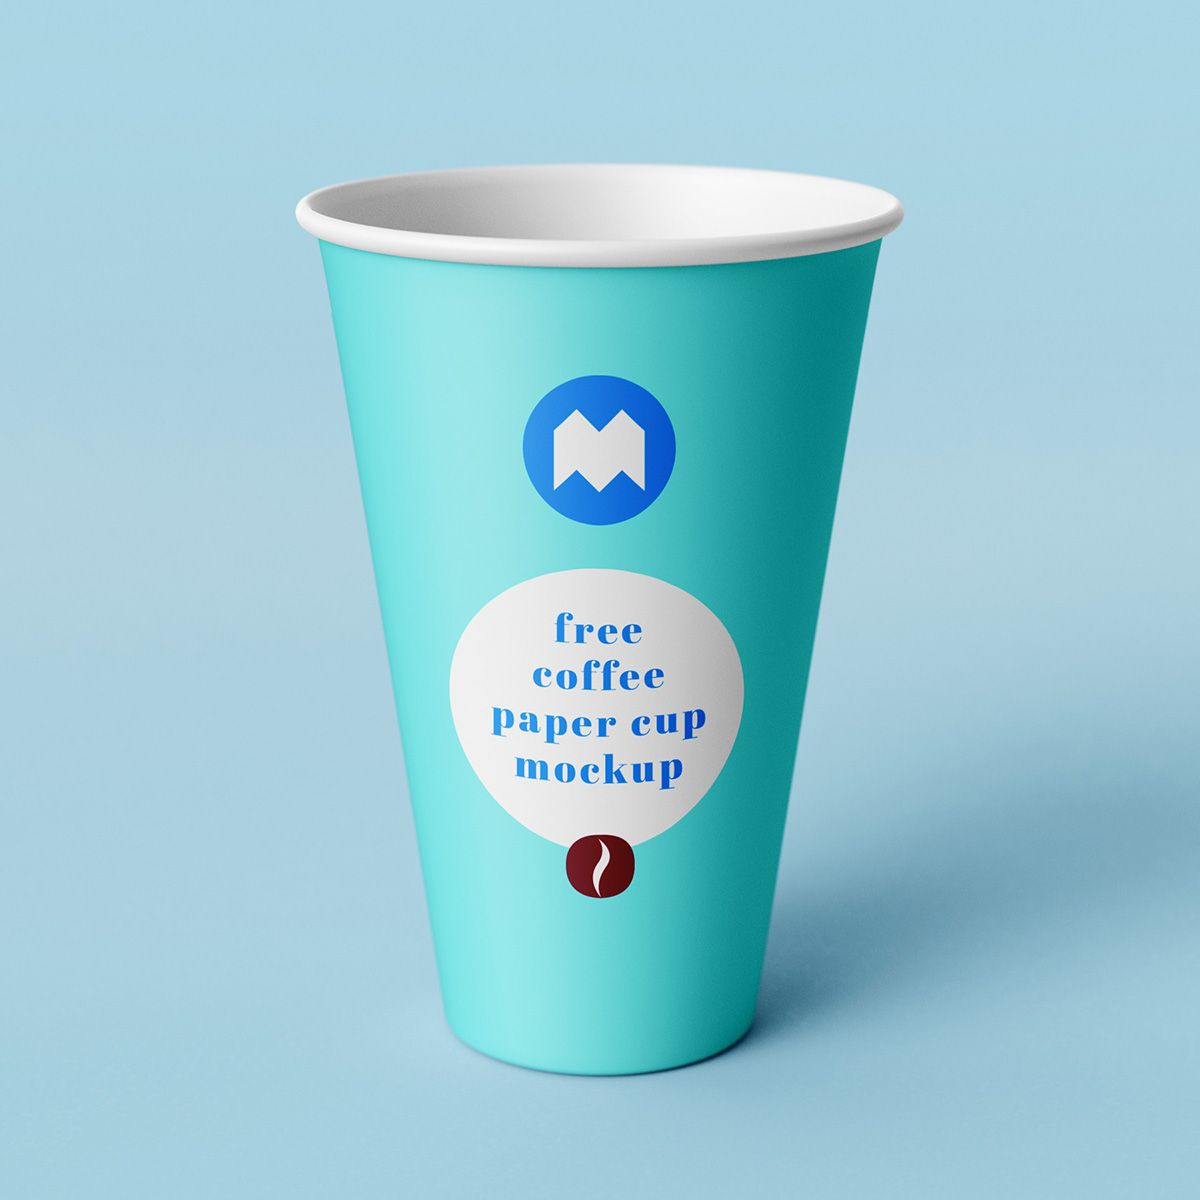 Free coffee paper cup mockup